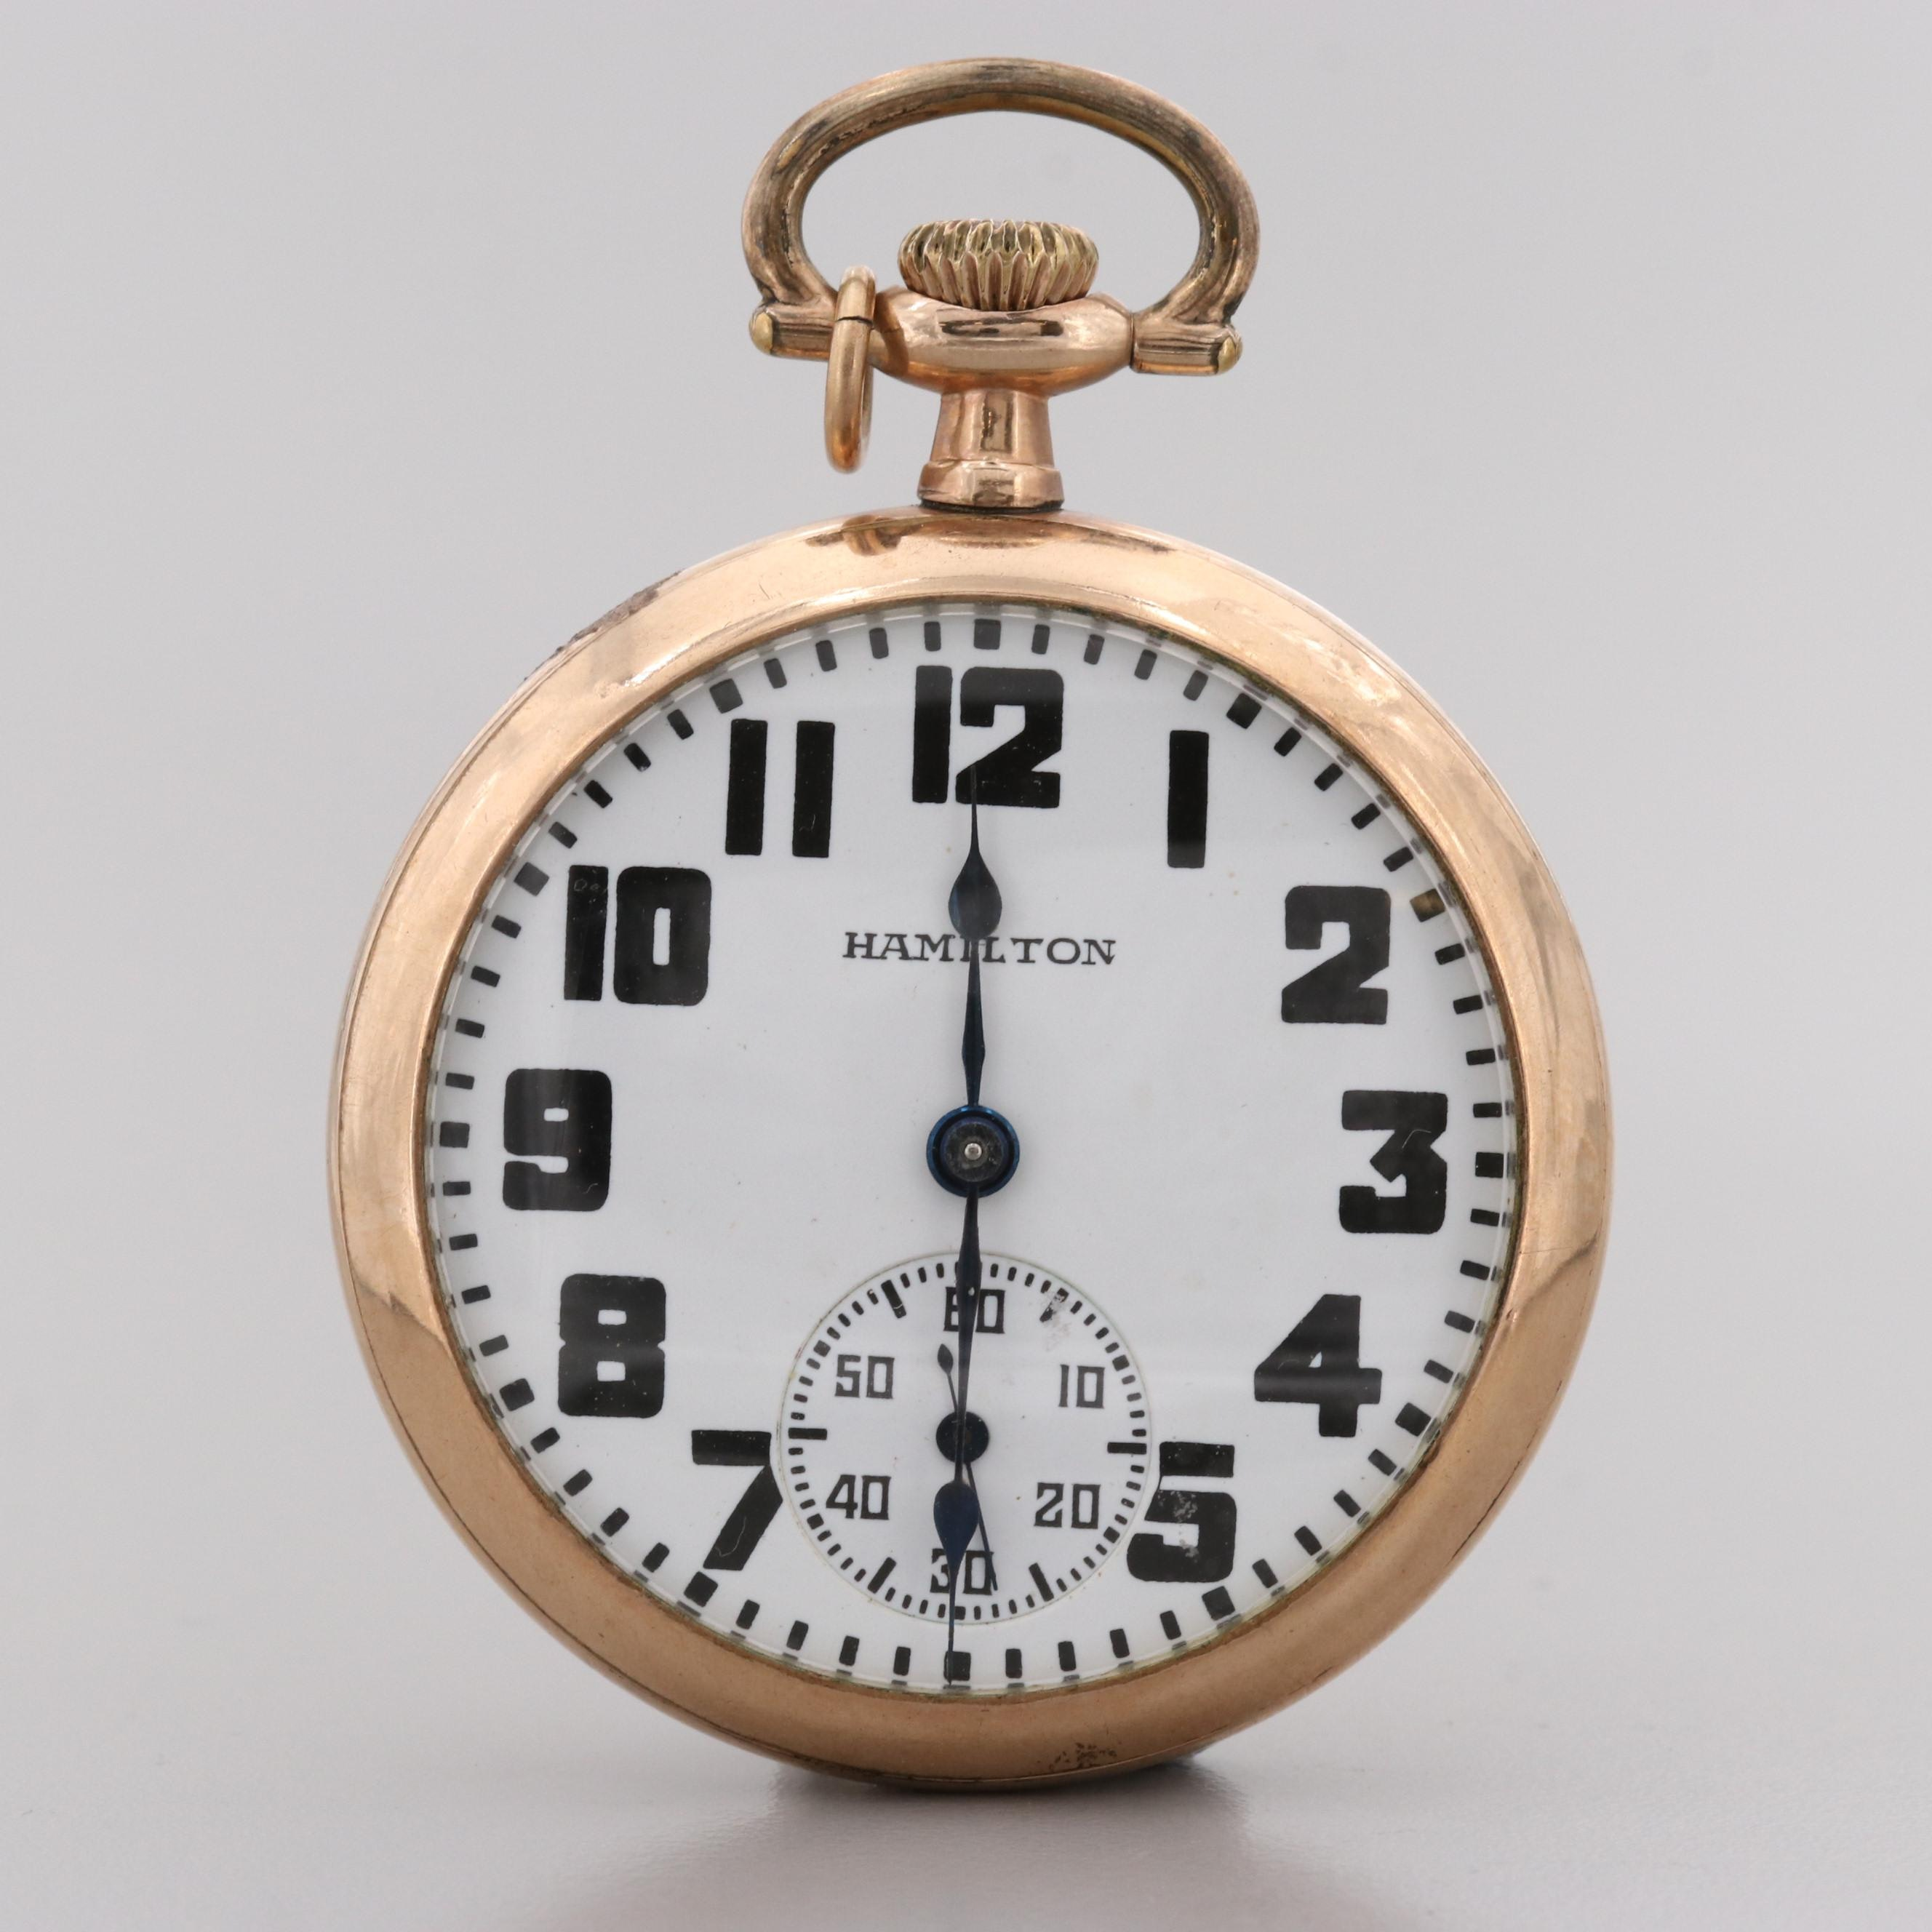 Hamilton Railroad Grade Gold Filled Pocket Watch, 1915